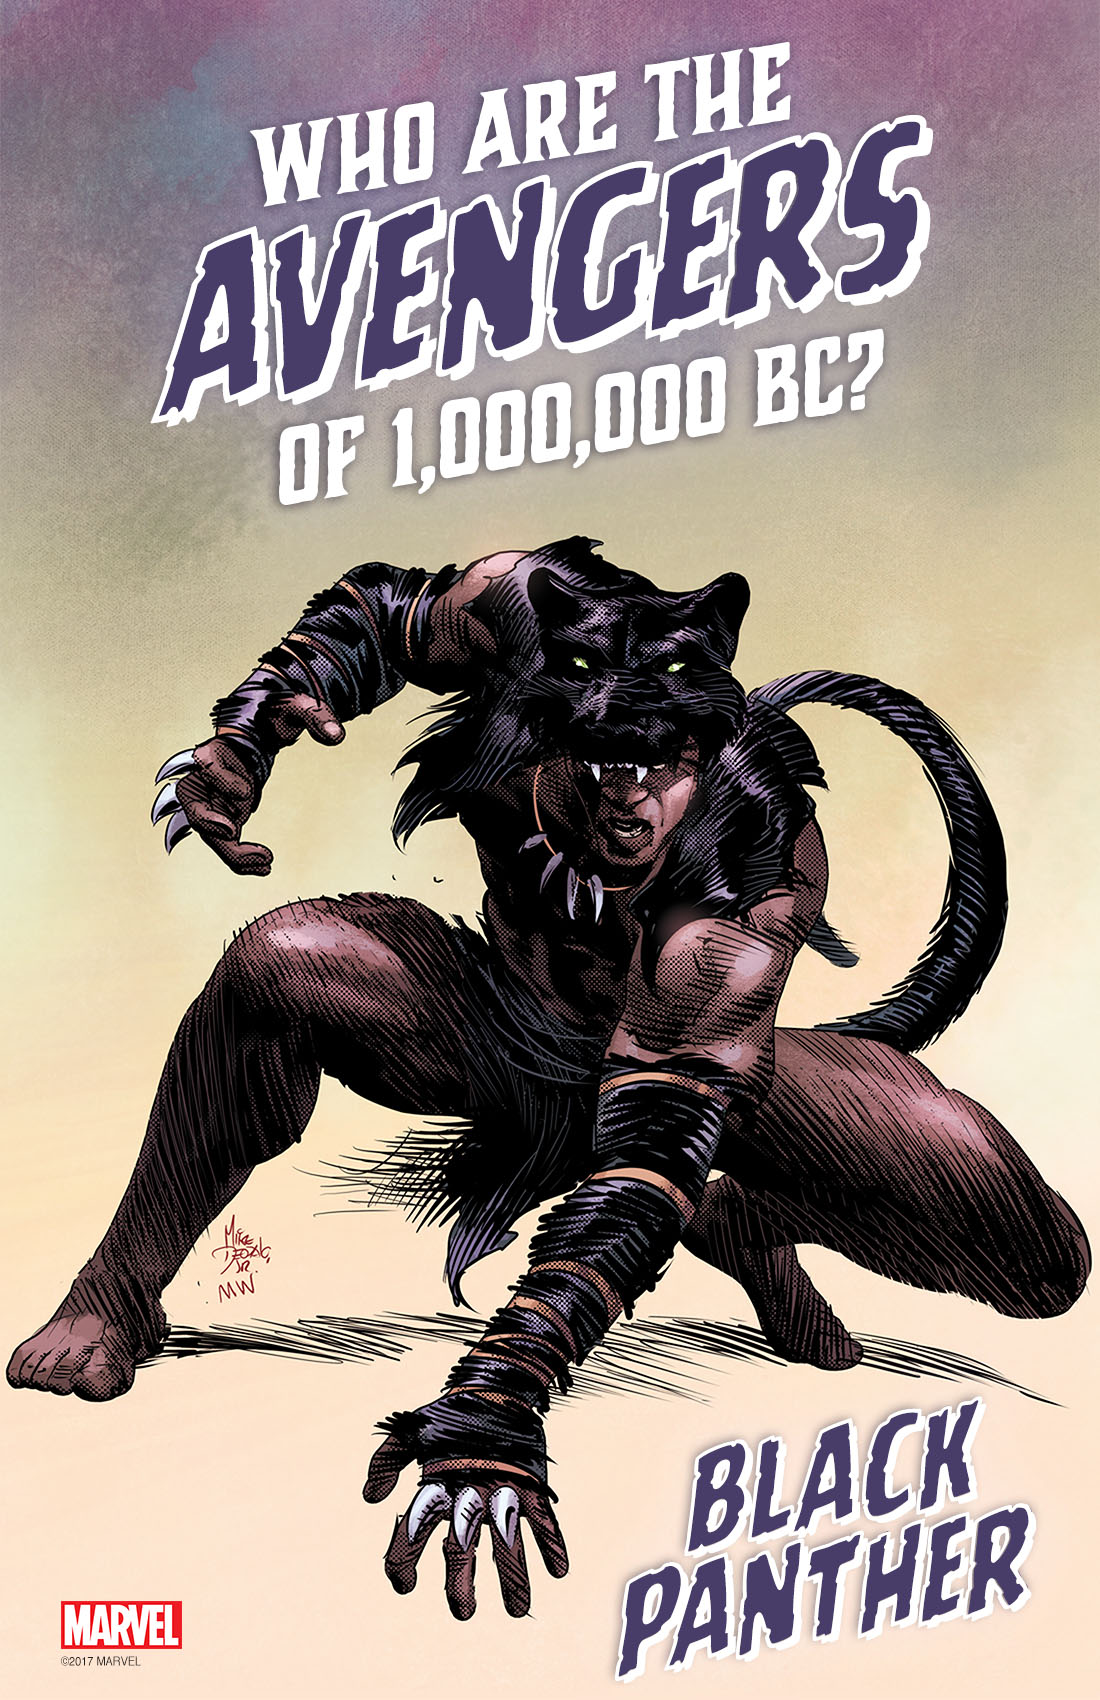 Who Are The 1,000,000 BC Avengers? - Previews World